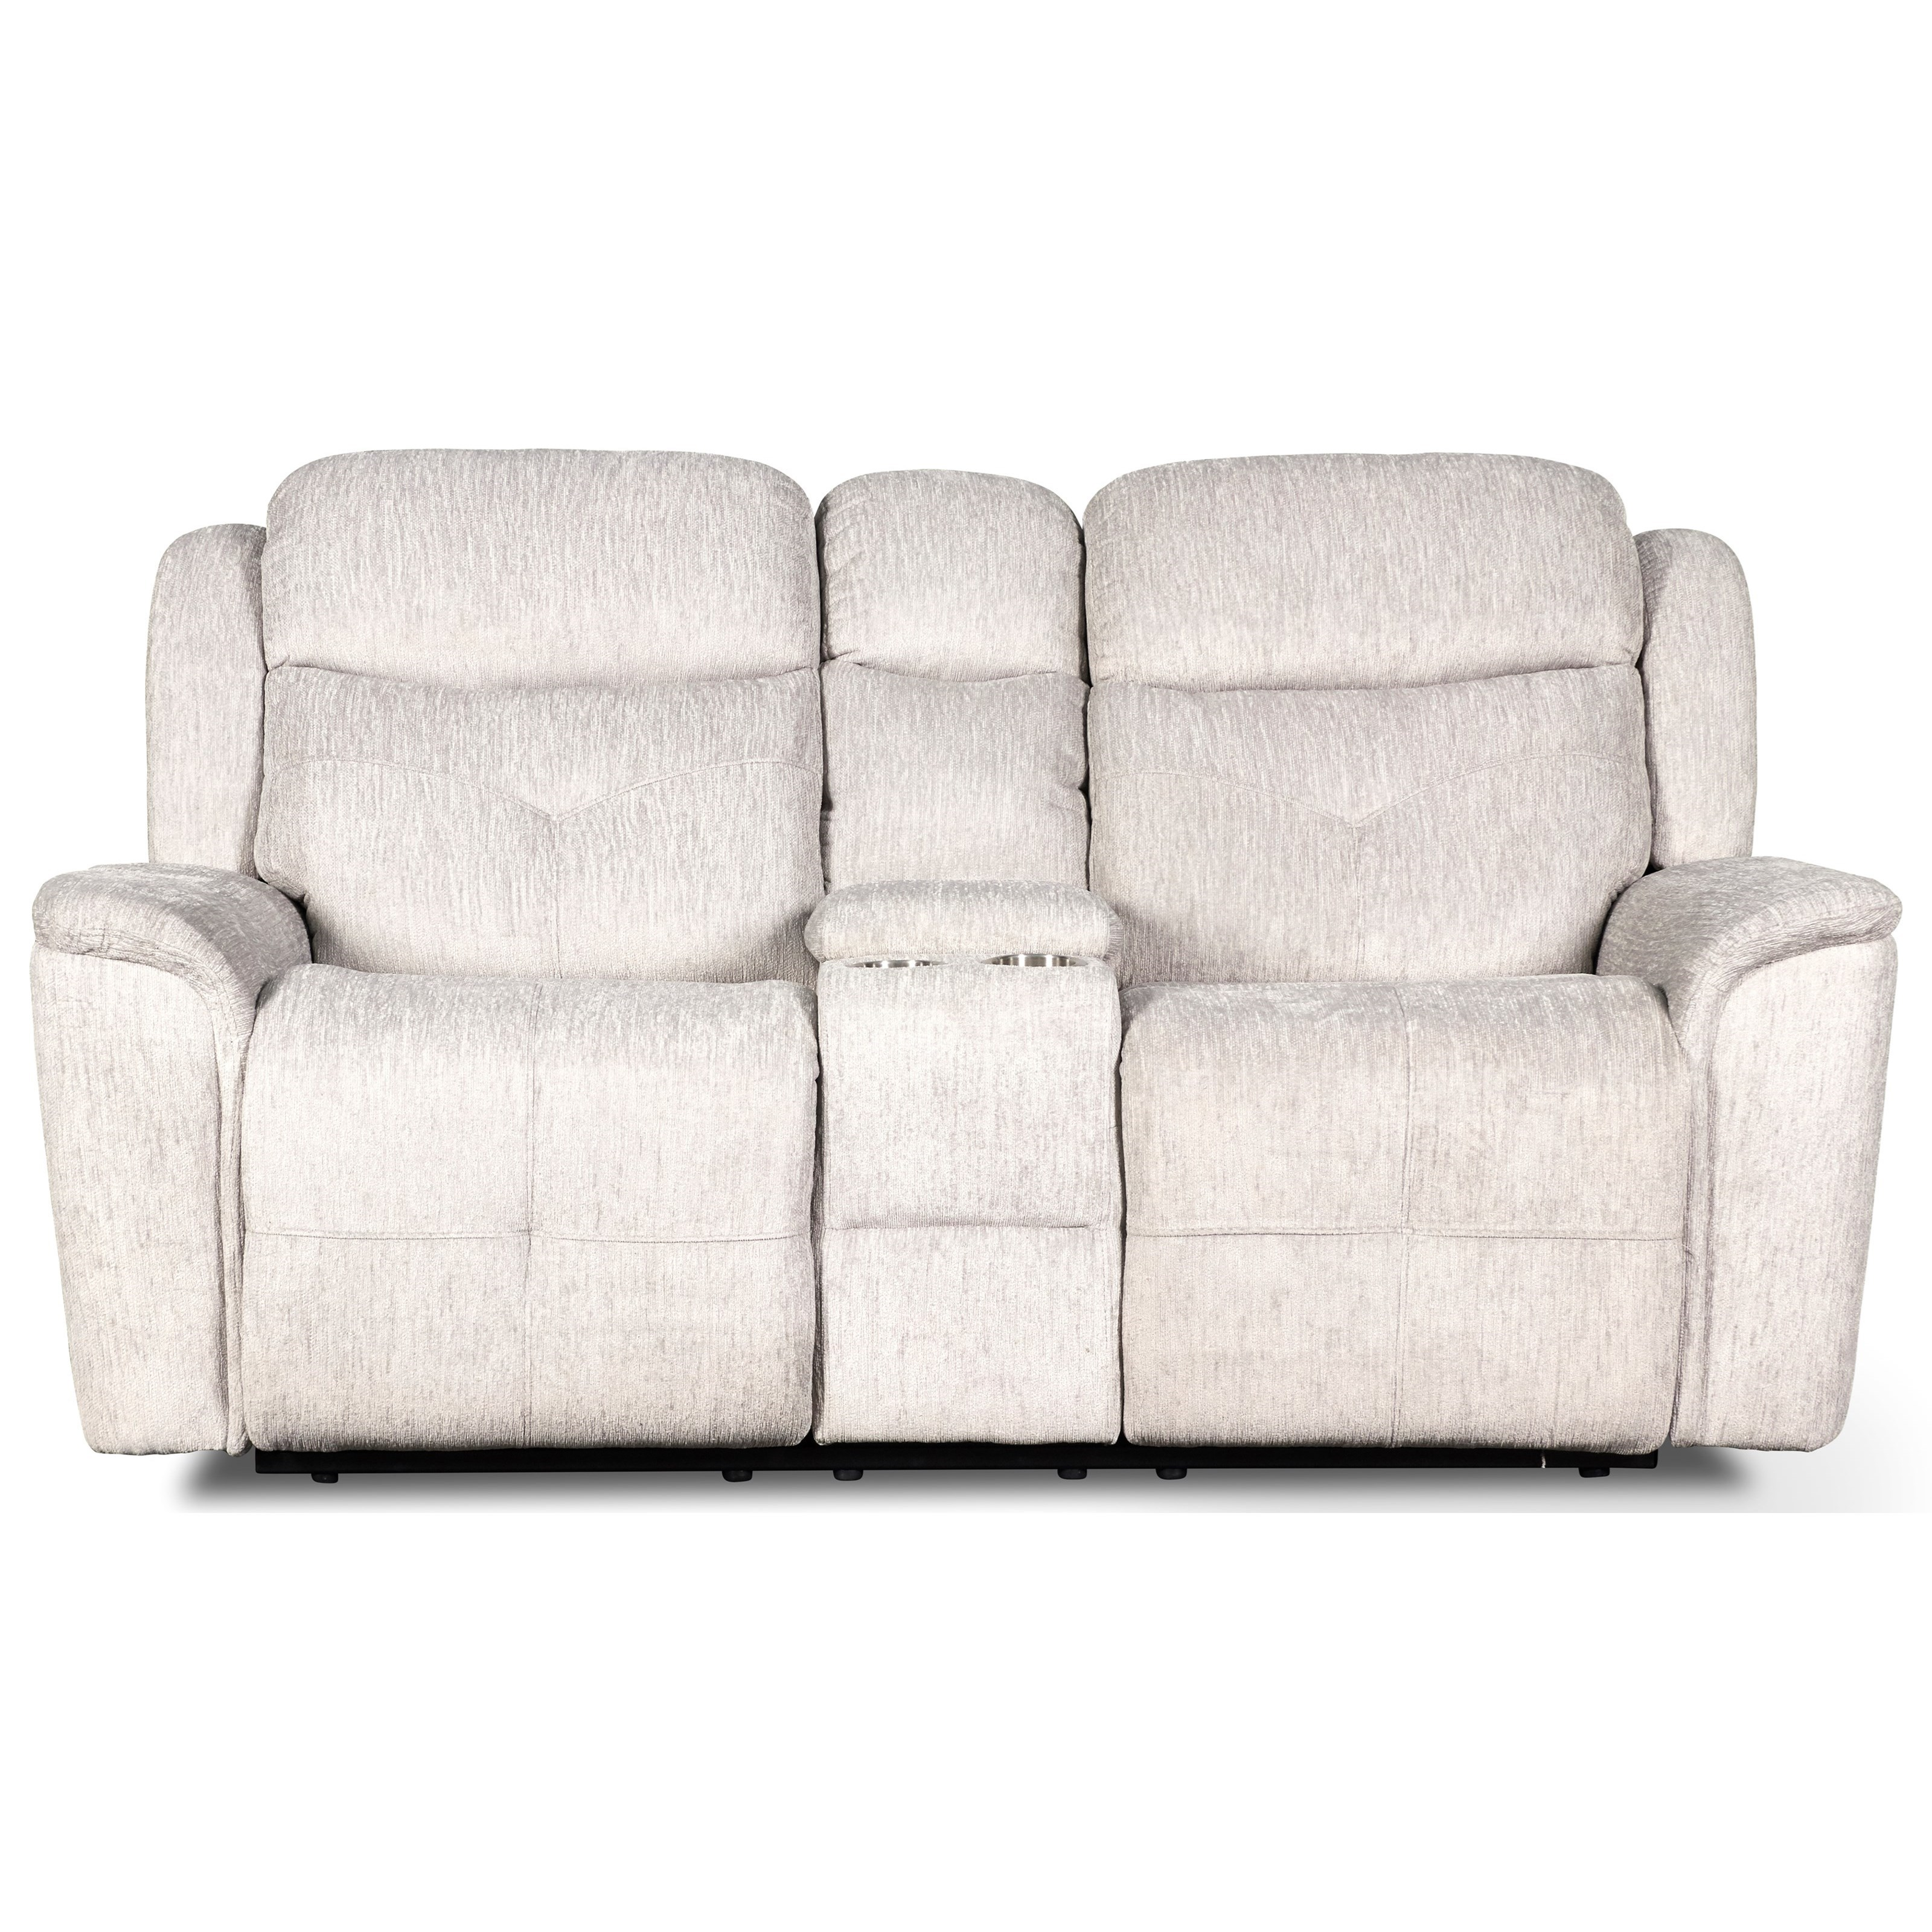 HAVANA Reclining Loveseat by New Classic at Beck's Furniture